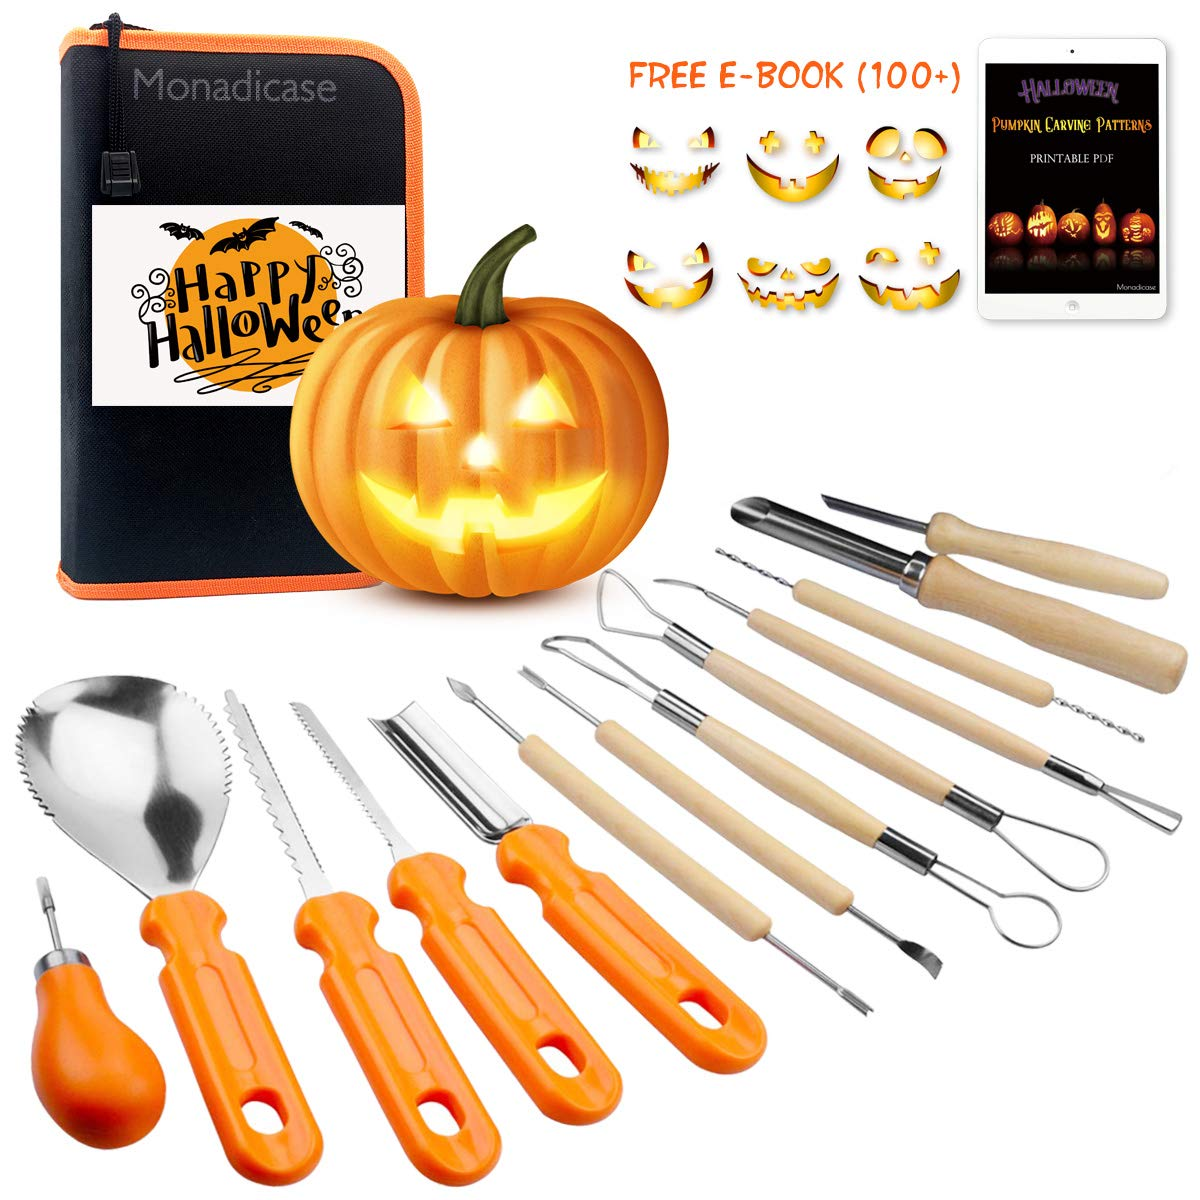 Halloween Pumpkin Carving Tool Kit 13 Pcs, Ultimate Sculpting Tools Pottery Art Set, Sturdy Stainless Steel Pumpkin Tools Knifes Gifts for Christmas Thanksgiving Fathers Day Kids Birthday by Monadicase